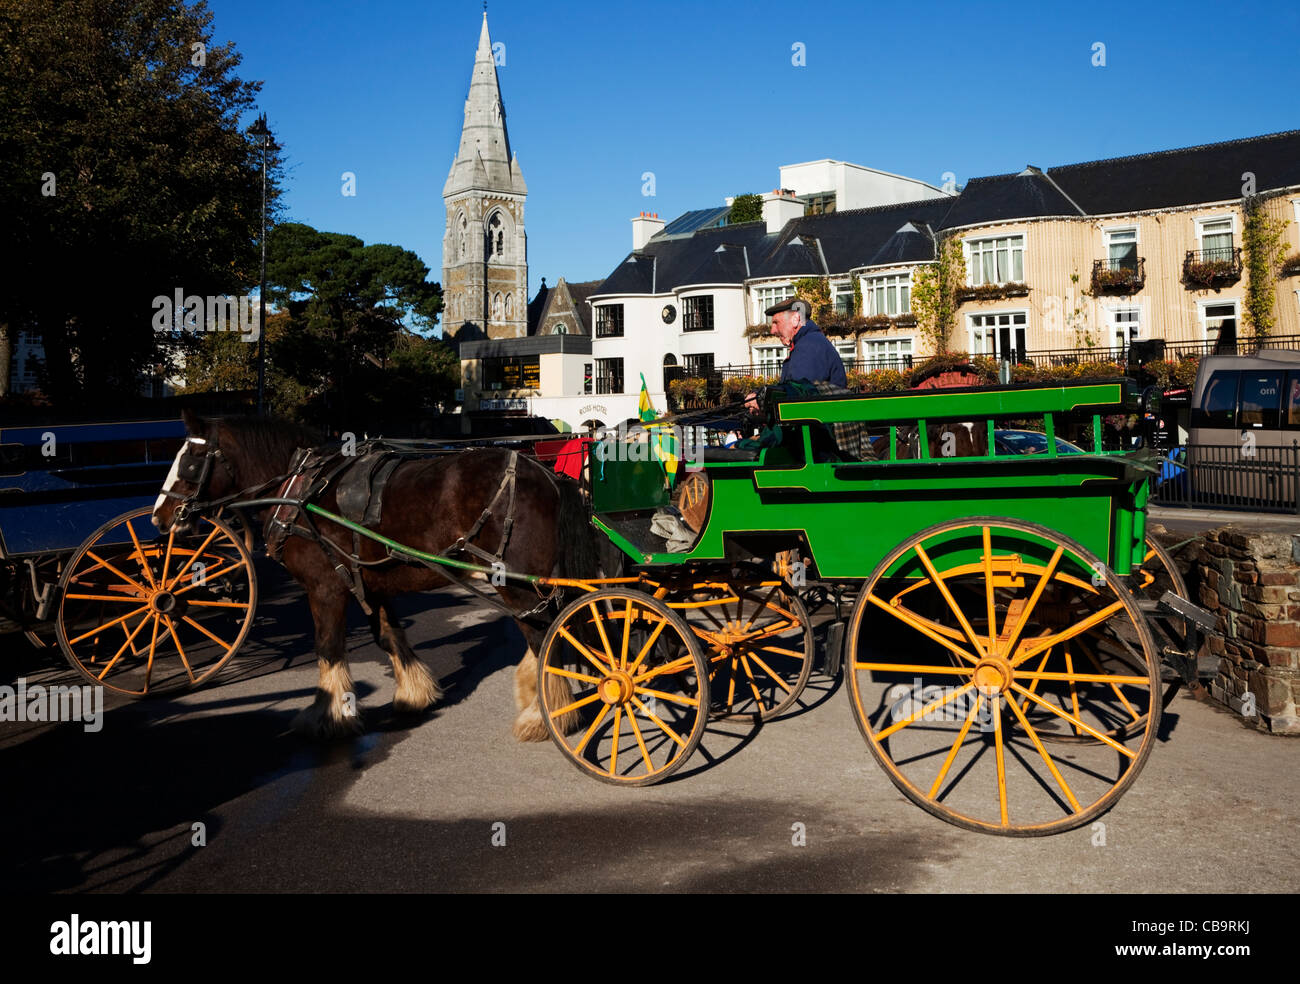 Tourist Jaunting Car in Killarney Town, County Kerry, Ireland - Stock Image